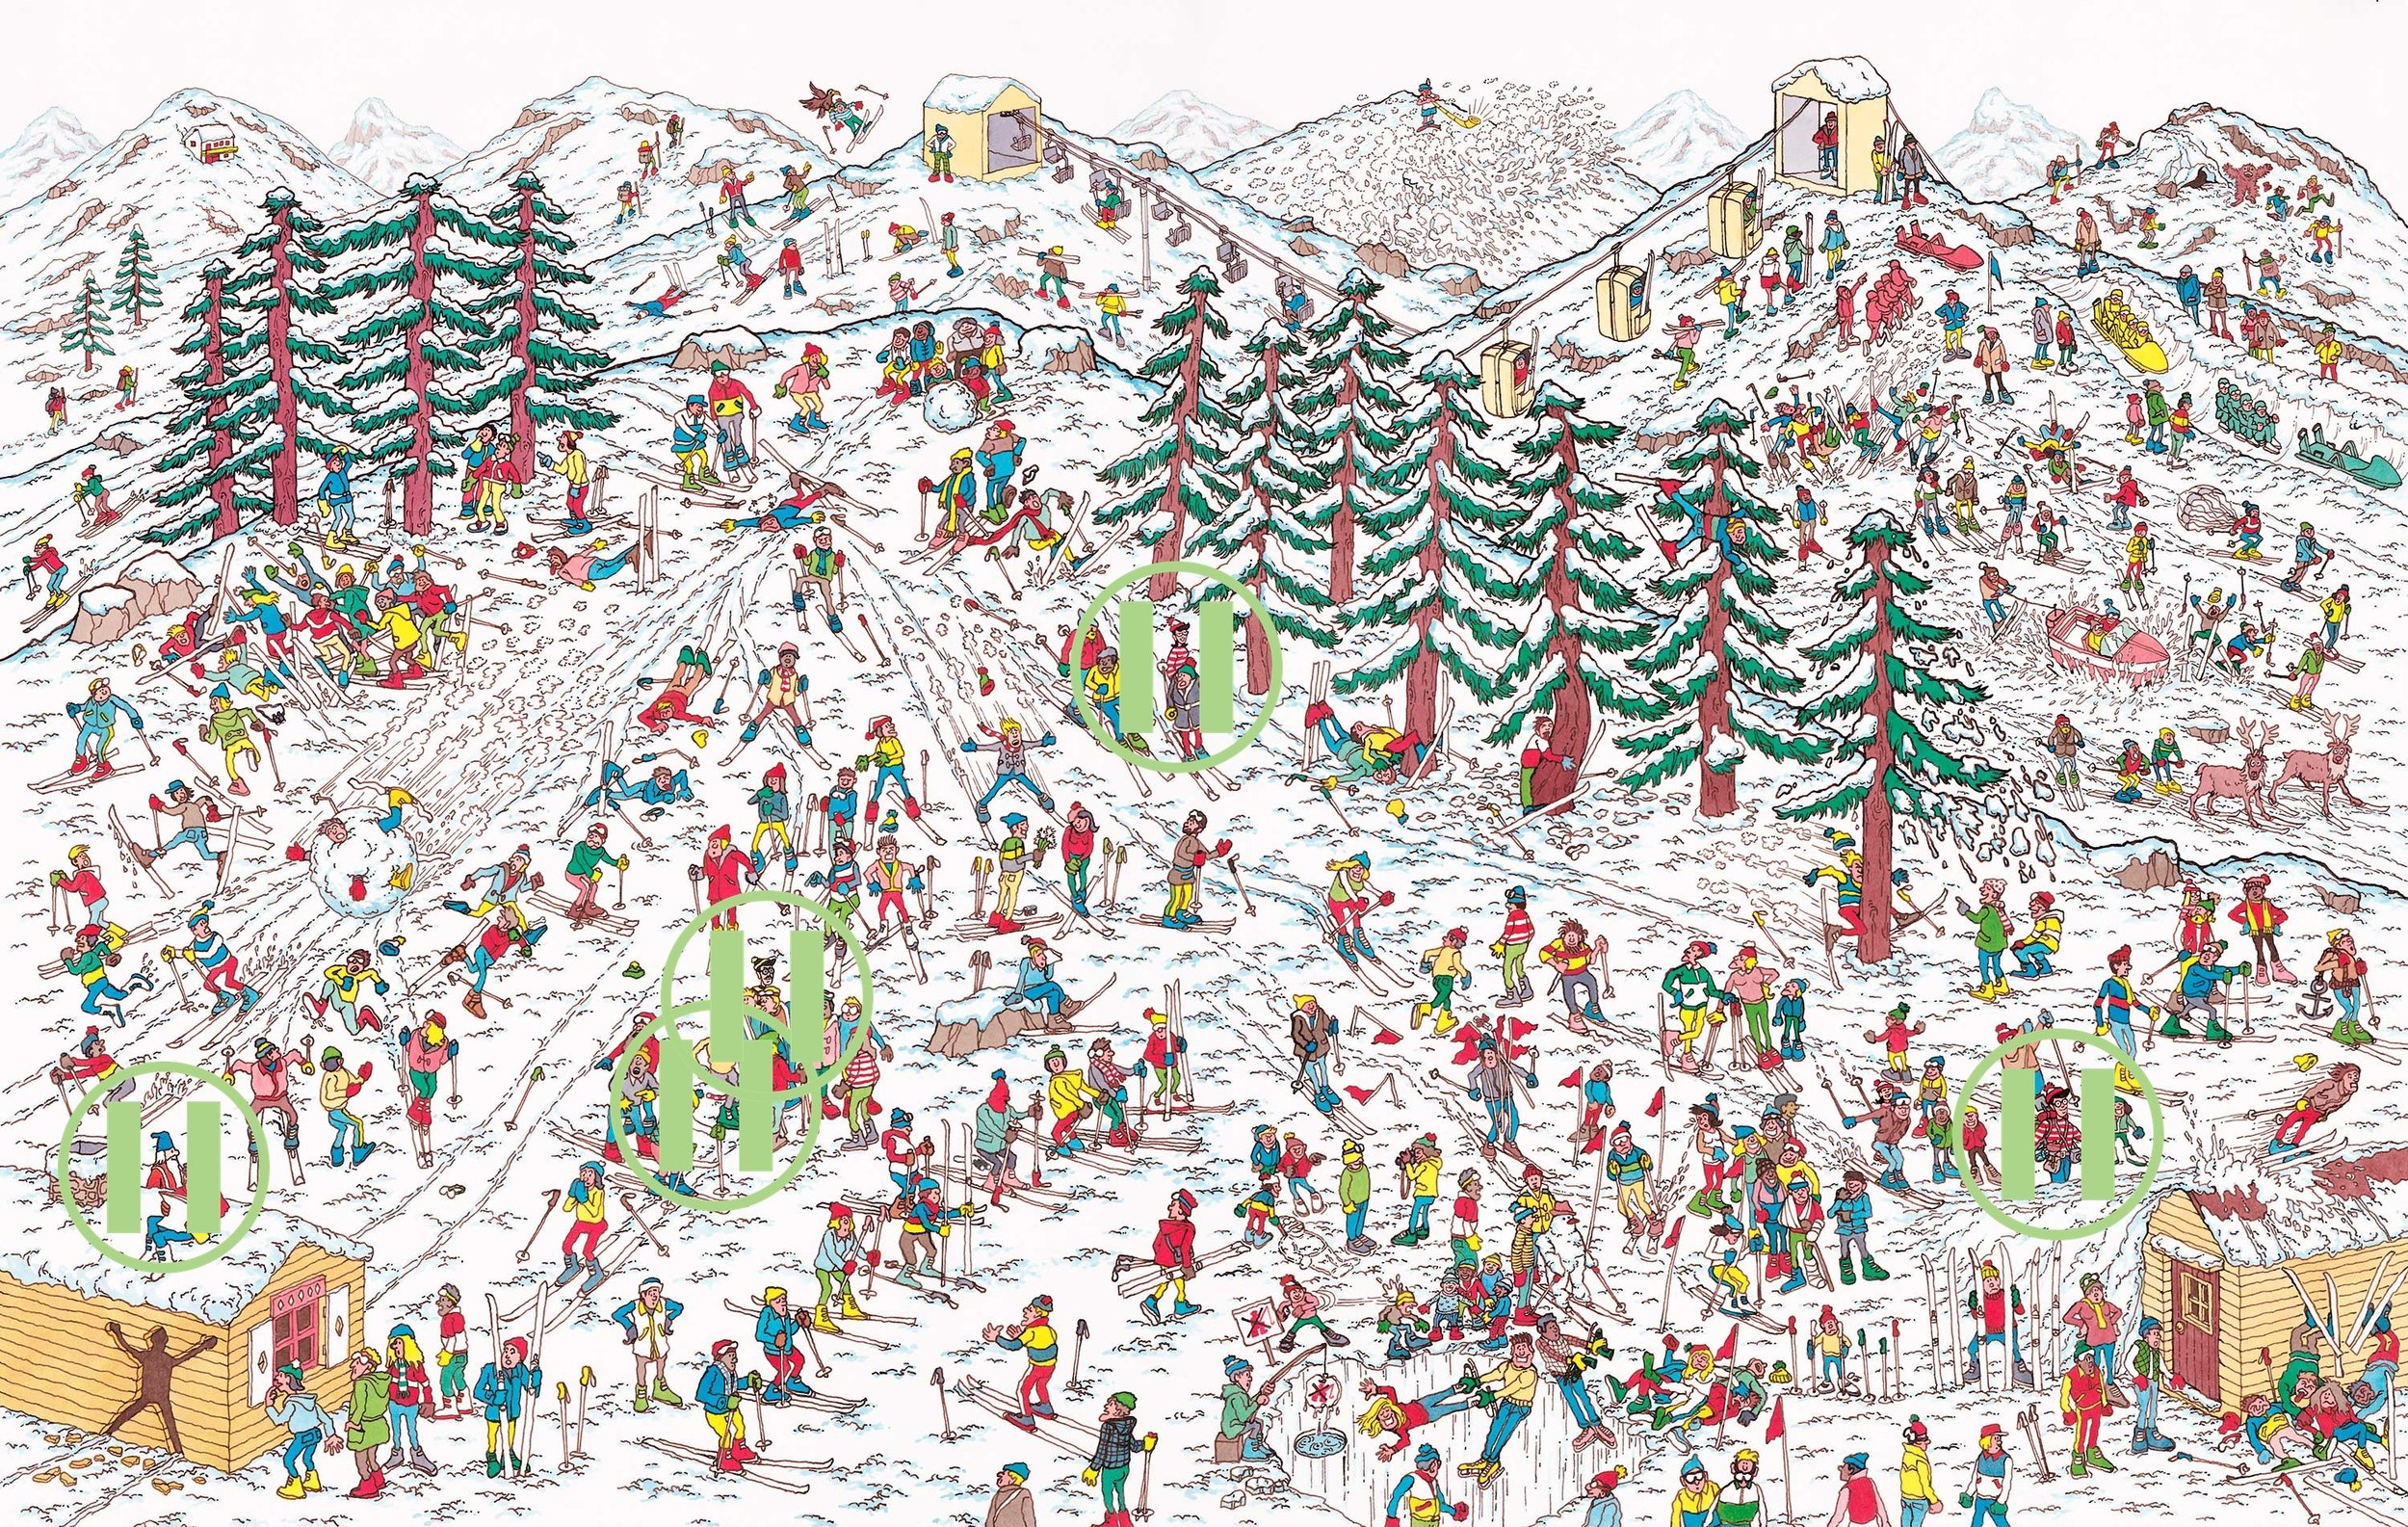 Where's Waldo - Andes Mountains, Chile